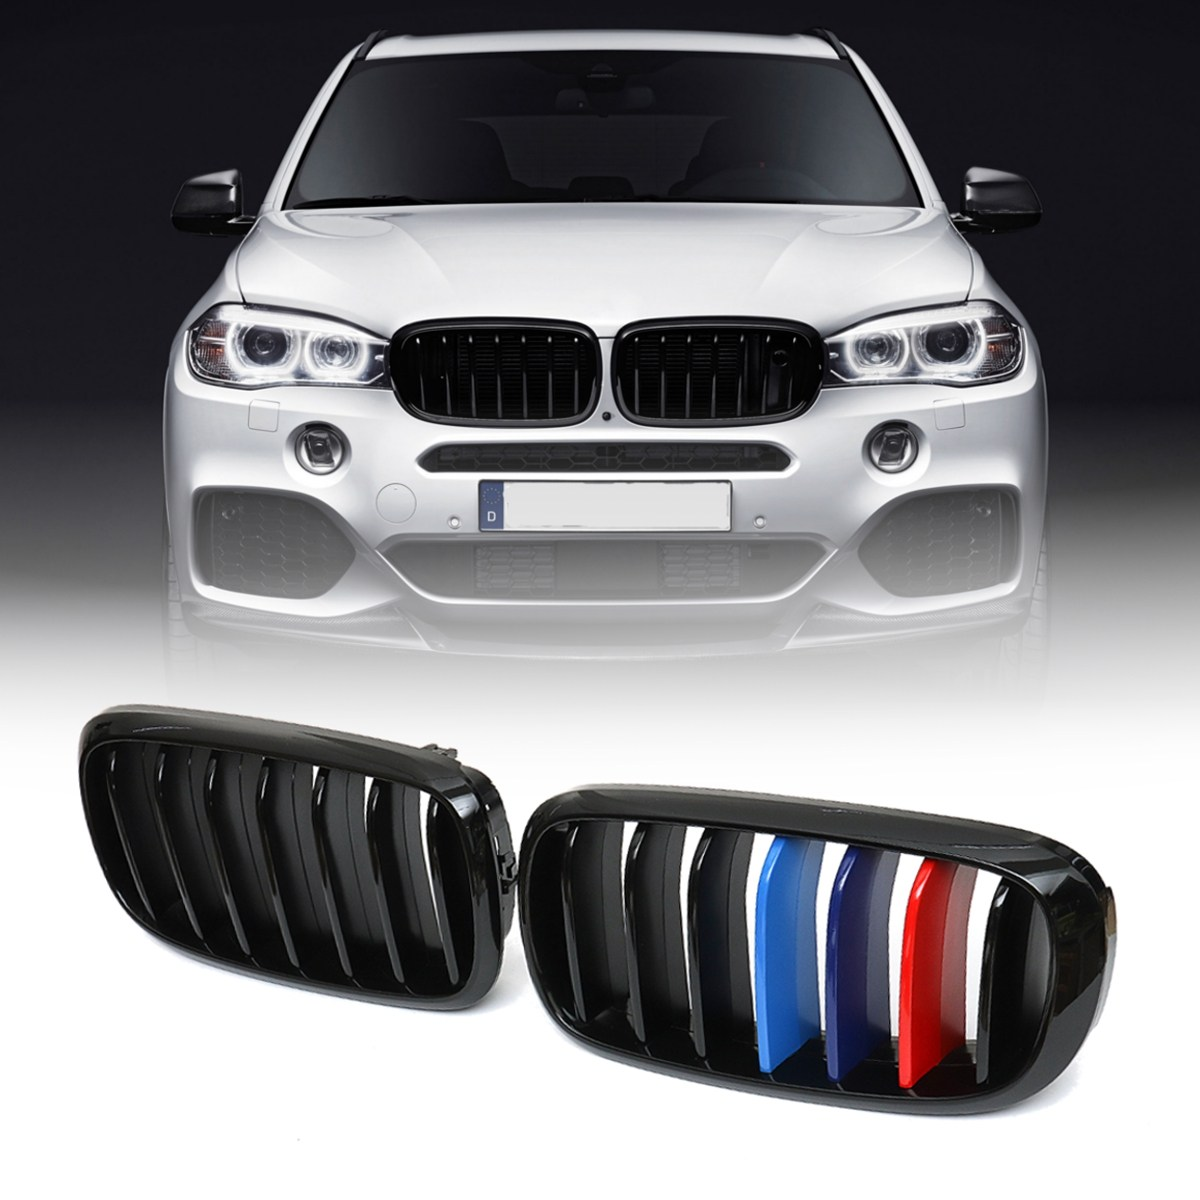 Pair Gloss Matt Black M-Color Front Kidney Racing Bumper Grille Grill For BMW X5 F15 X6 F16 X5M F85 X6M F86 2014 2015 2016 2017 pair gloss matt black m color front kidney racing bumper grille grill for bmw x5 f15 x6 f16 x5m f85 x6m f86 2014 2015 2016 2017